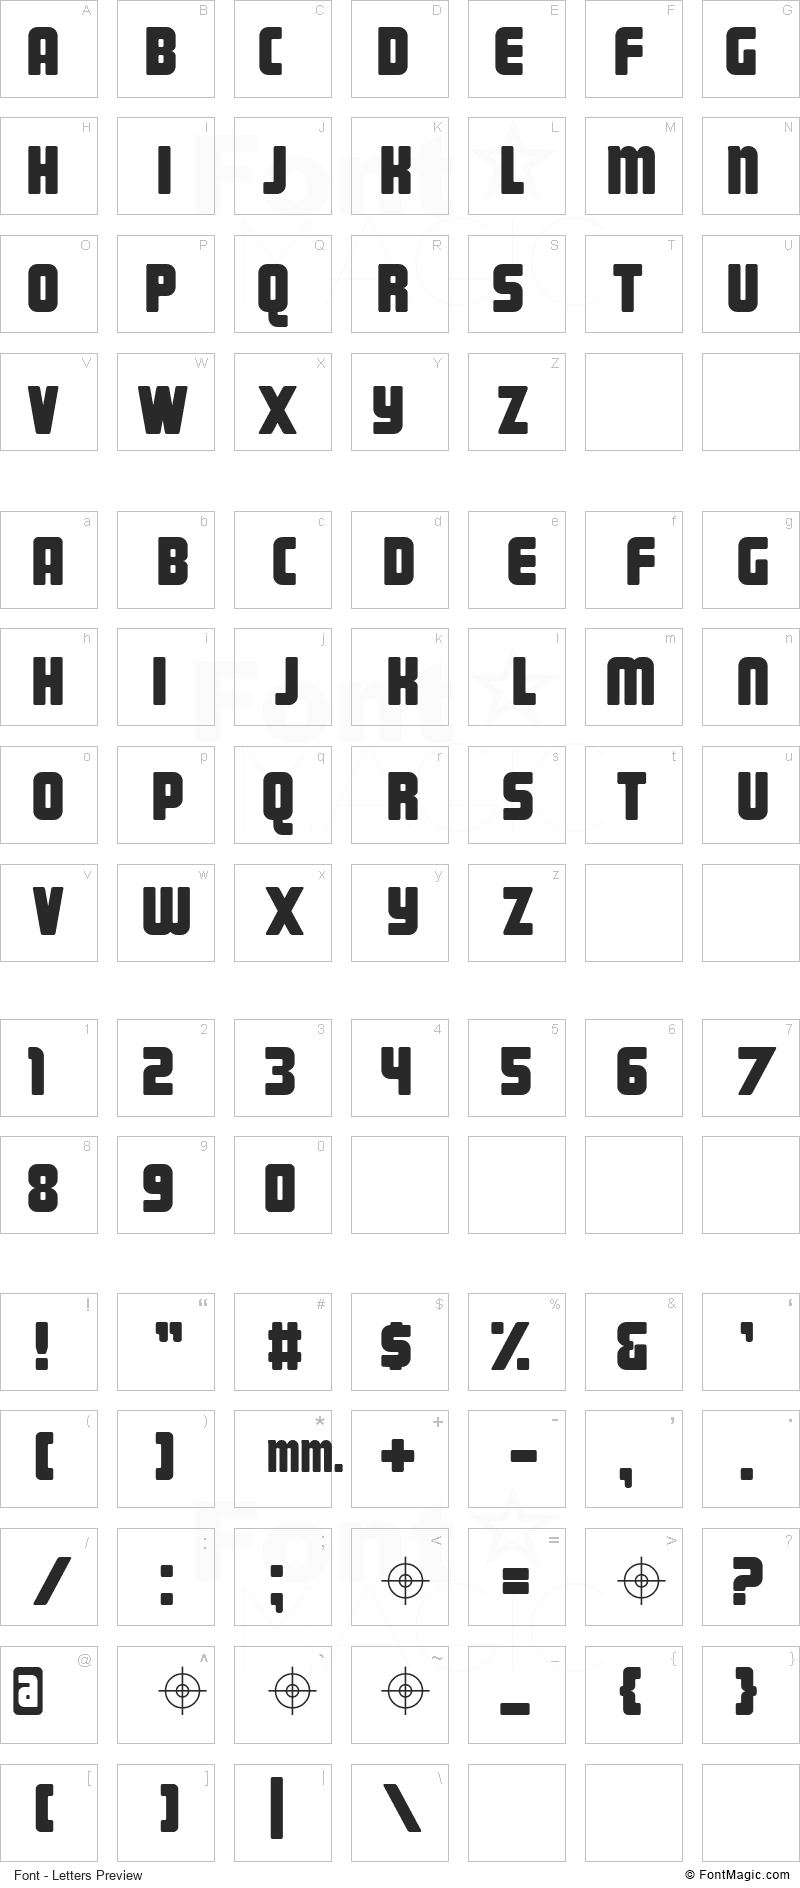 Magnum Font - All Latters Preview Chart